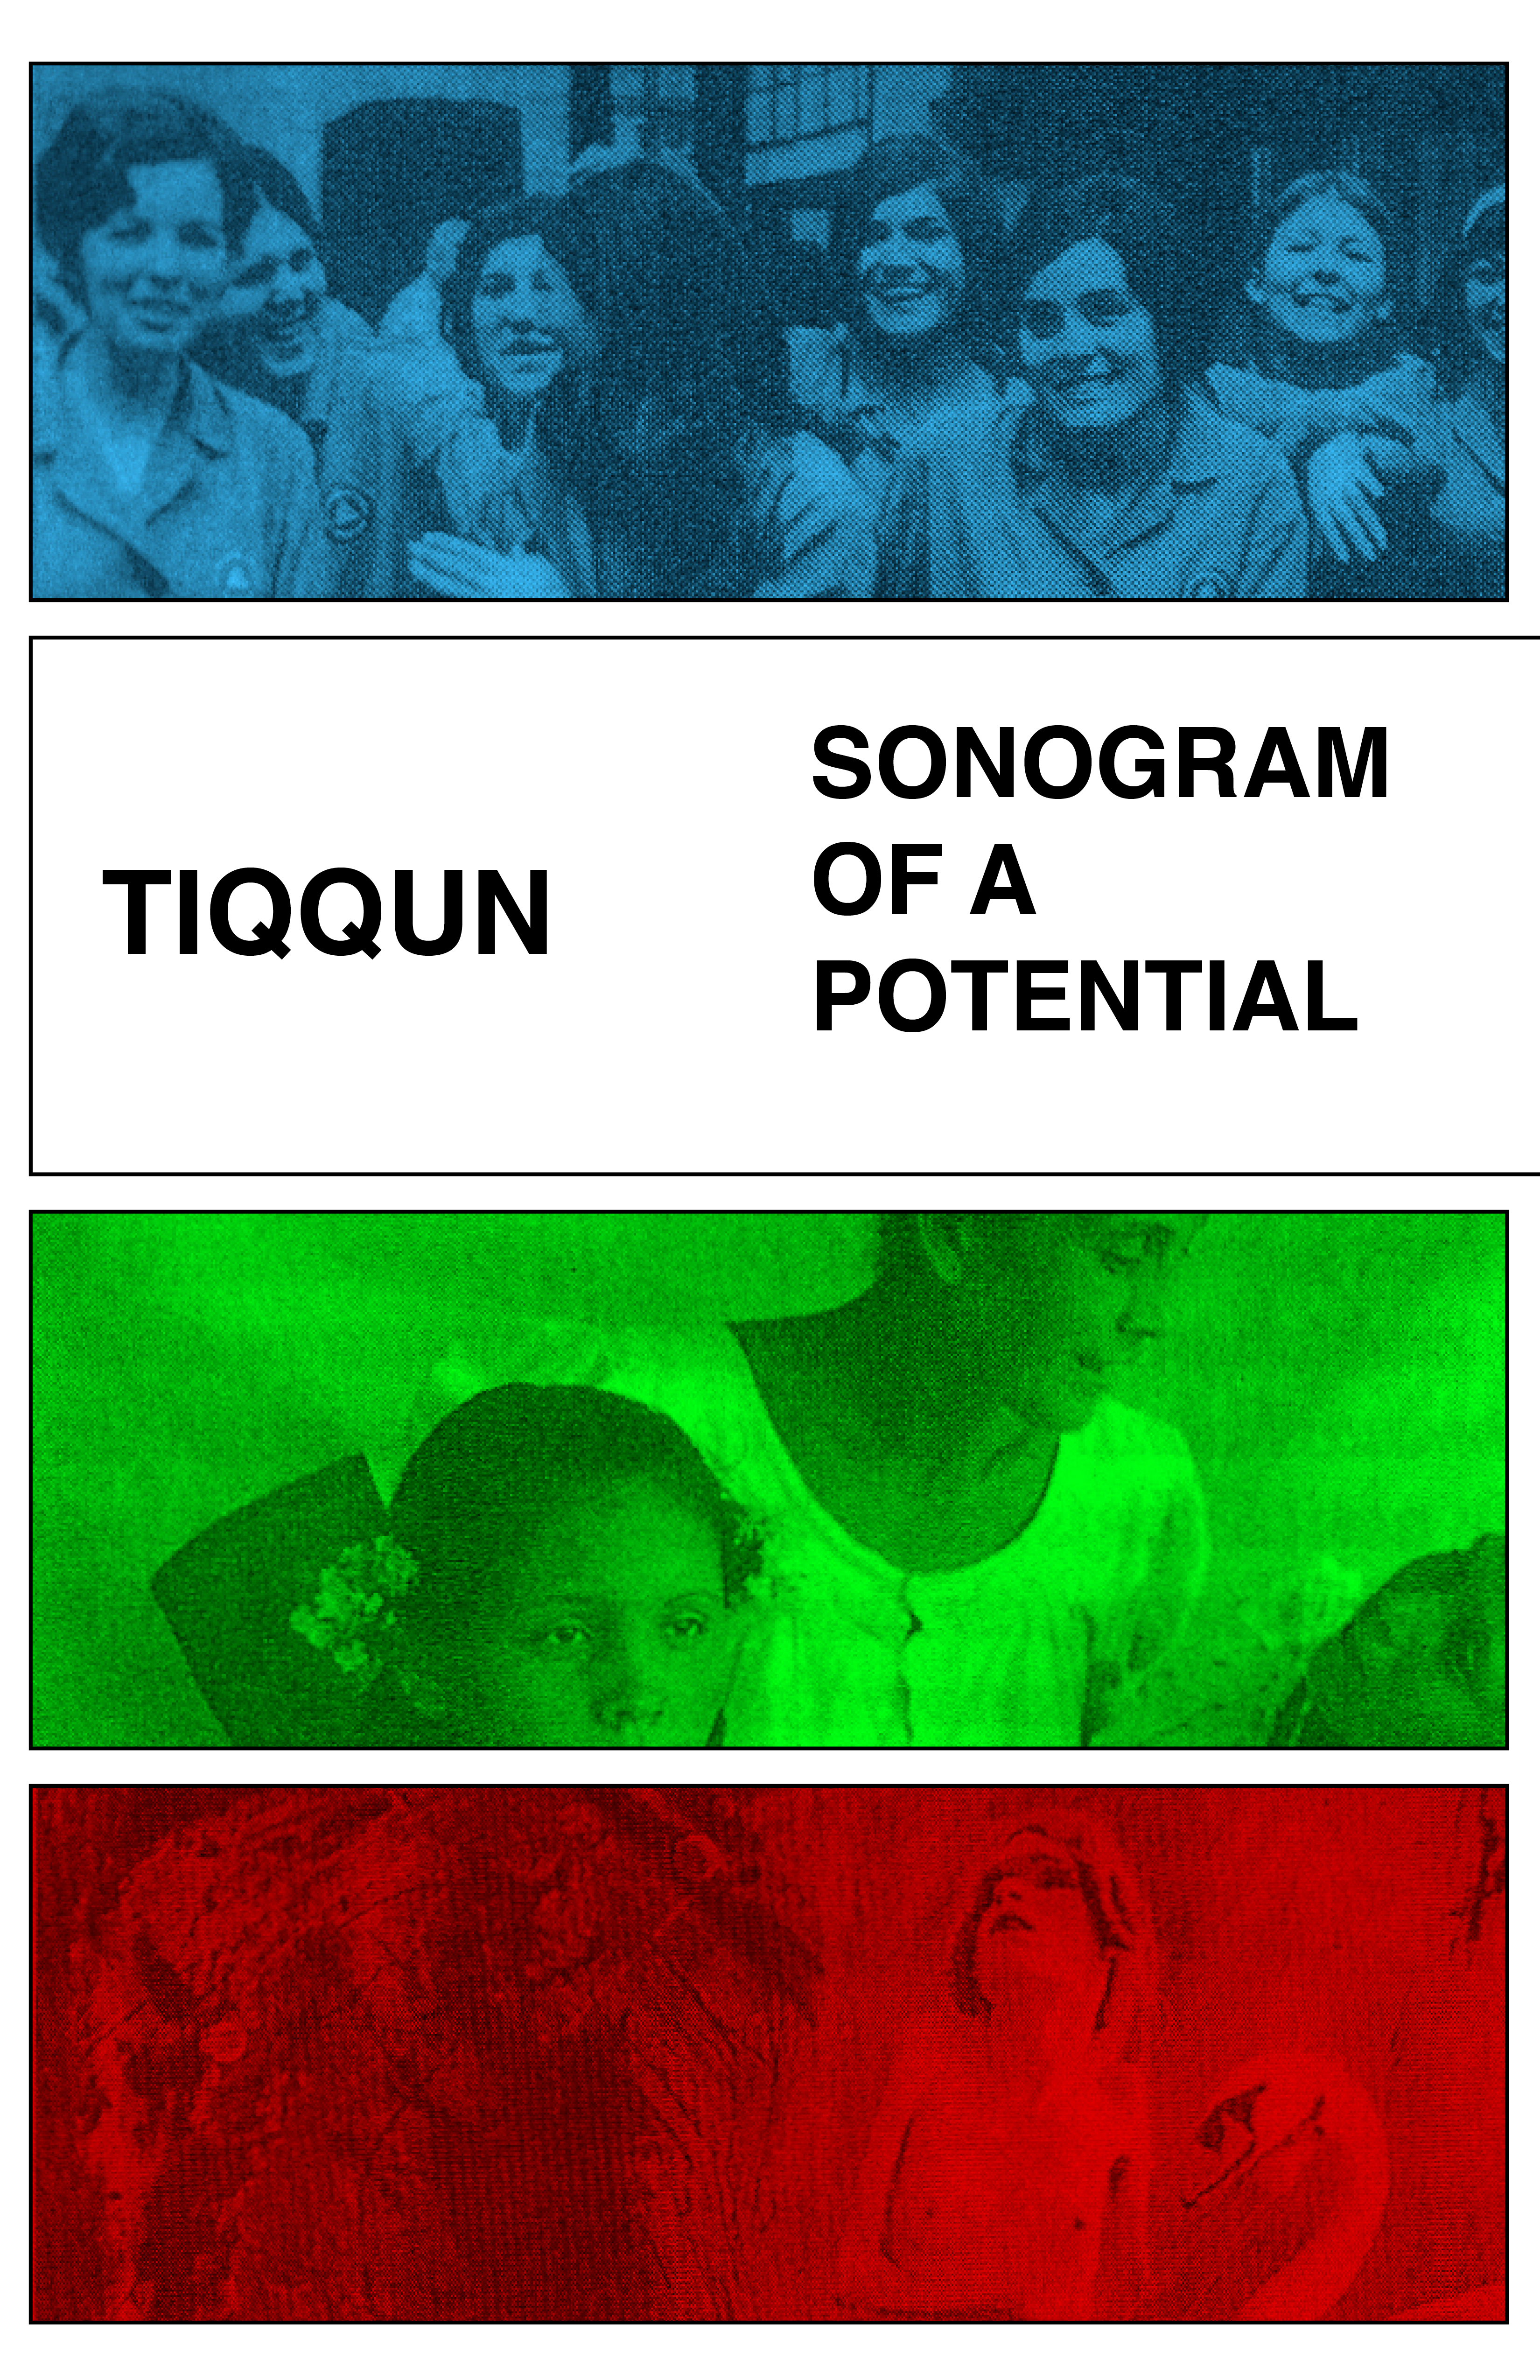 Cover Image for Sonogram of a Potential